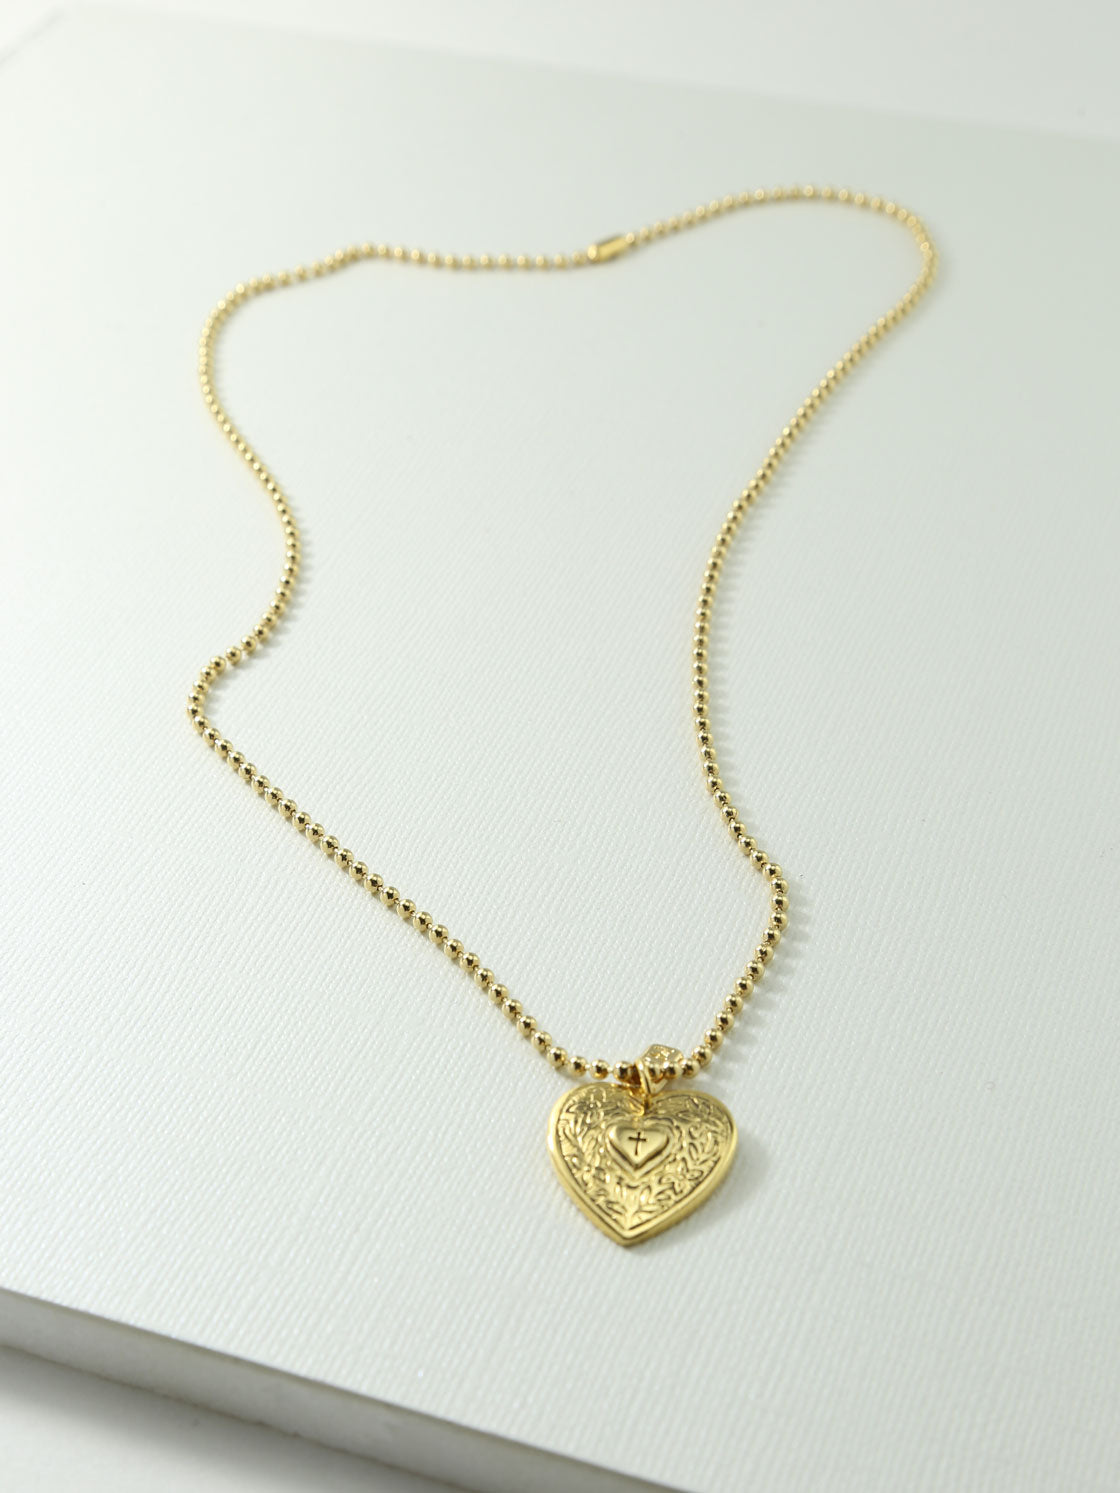 necklace of frankfort jewellery nk kentucky heart nitro hrts